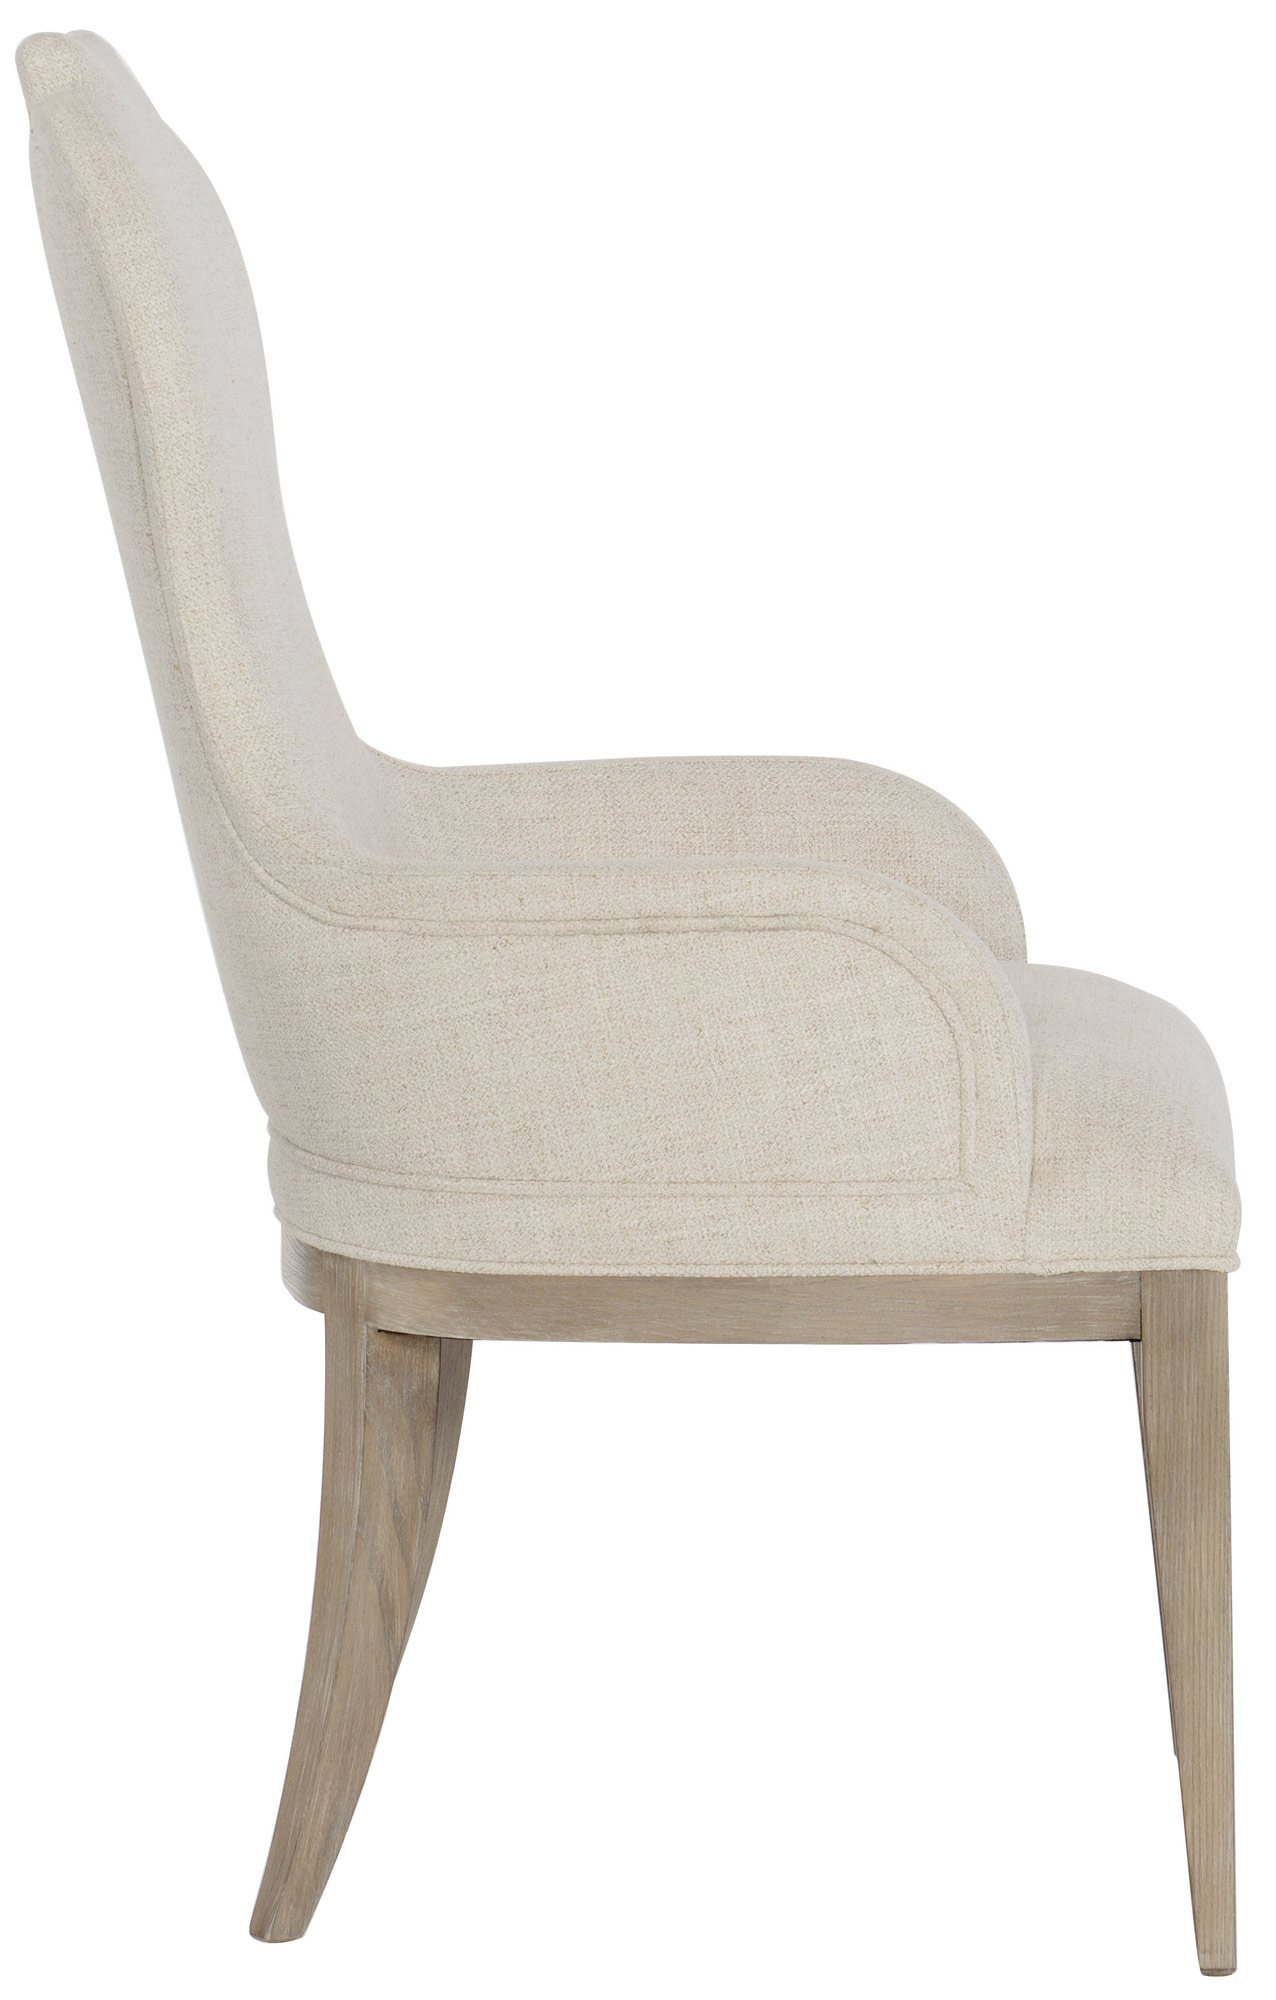 upholstered arm chair dining